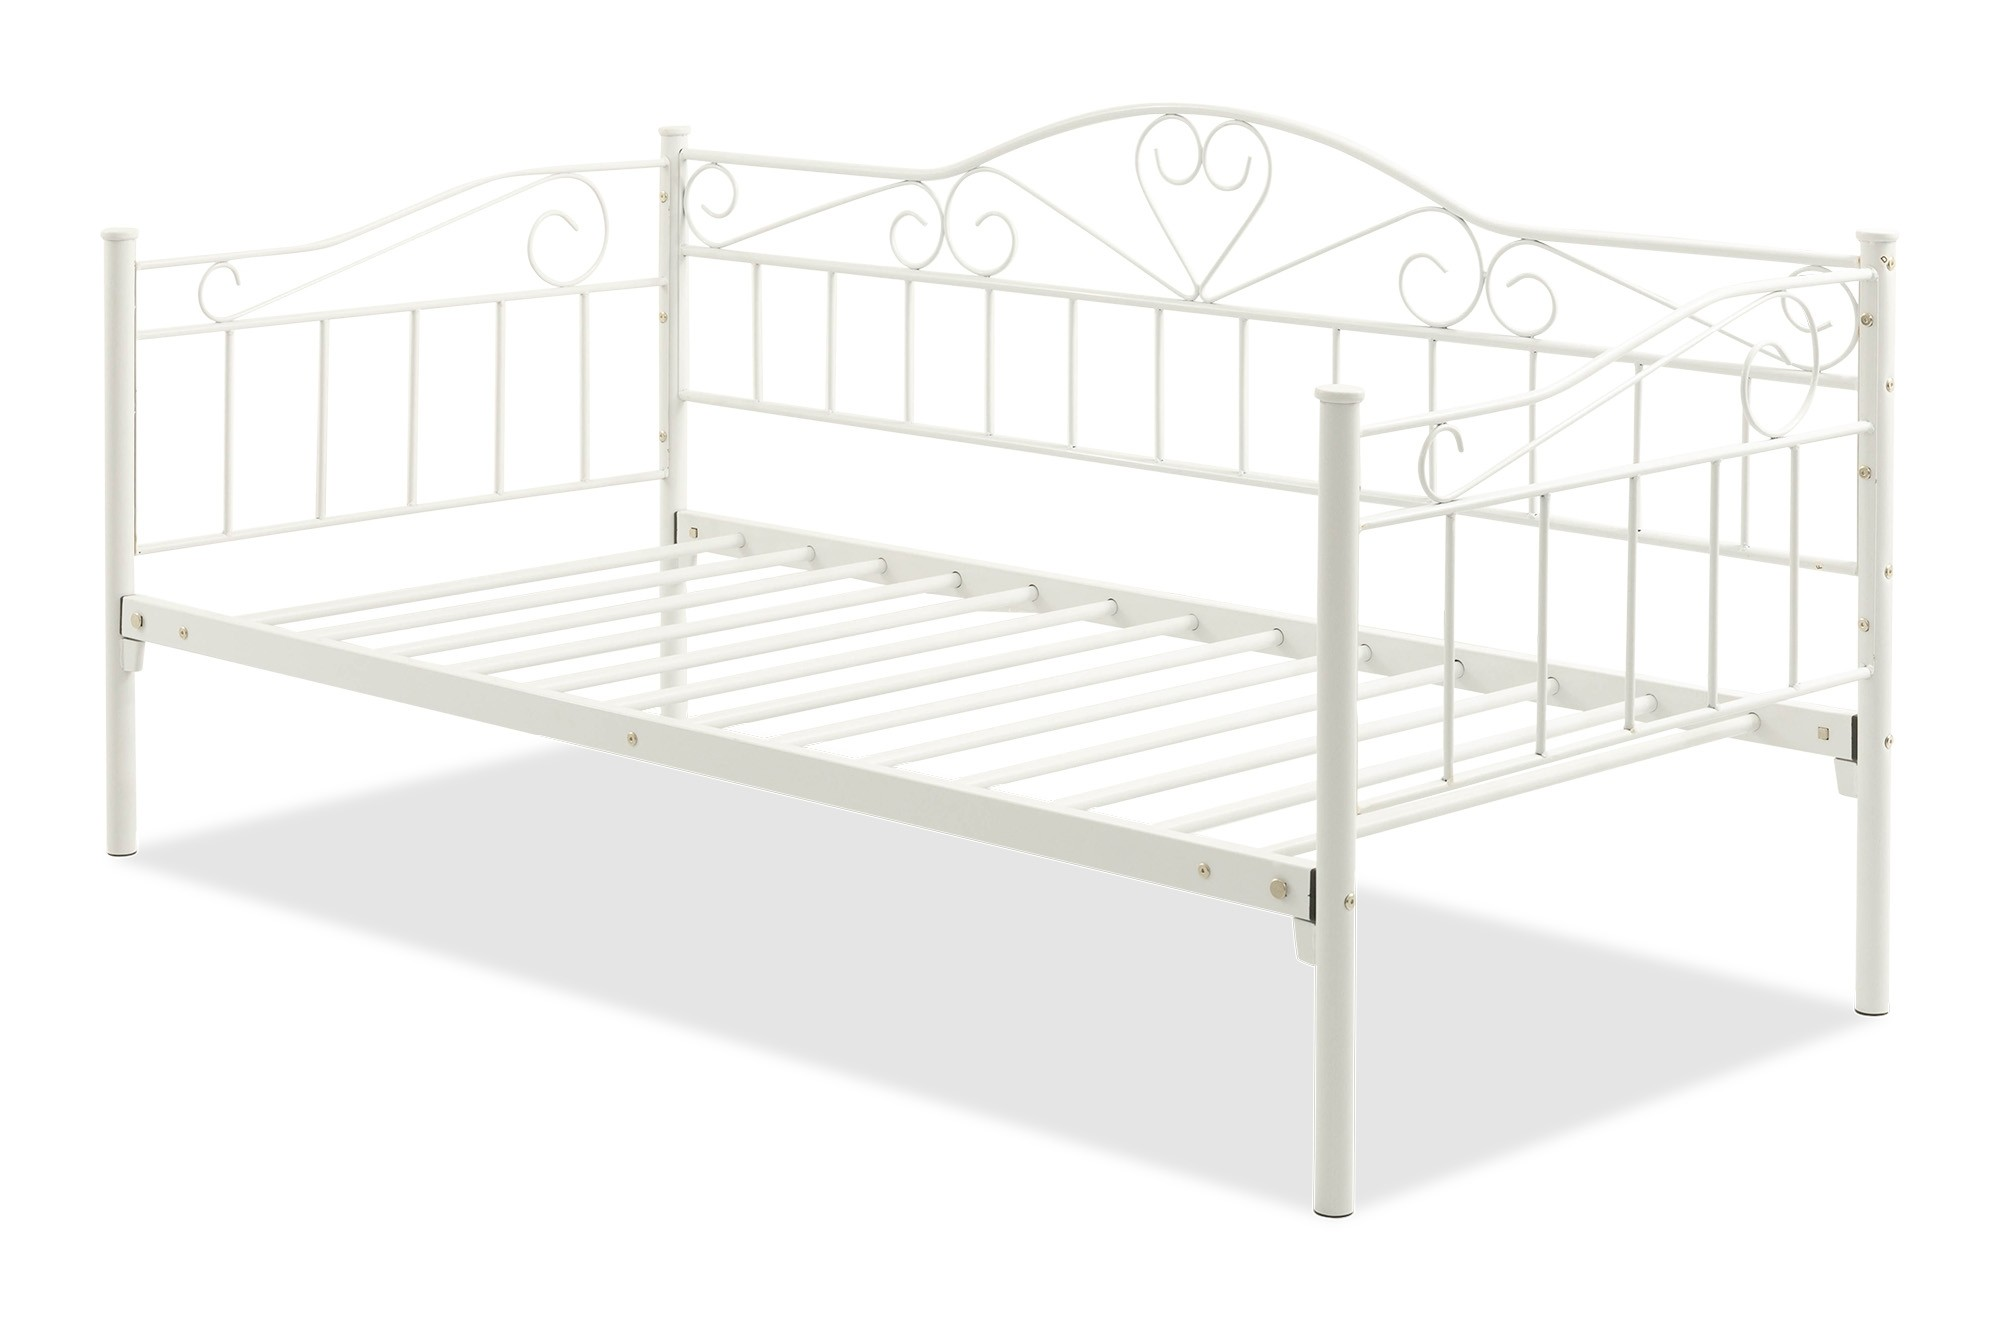 - Nora Metal Daybed Frame Single (White) Furniture & Home Décor